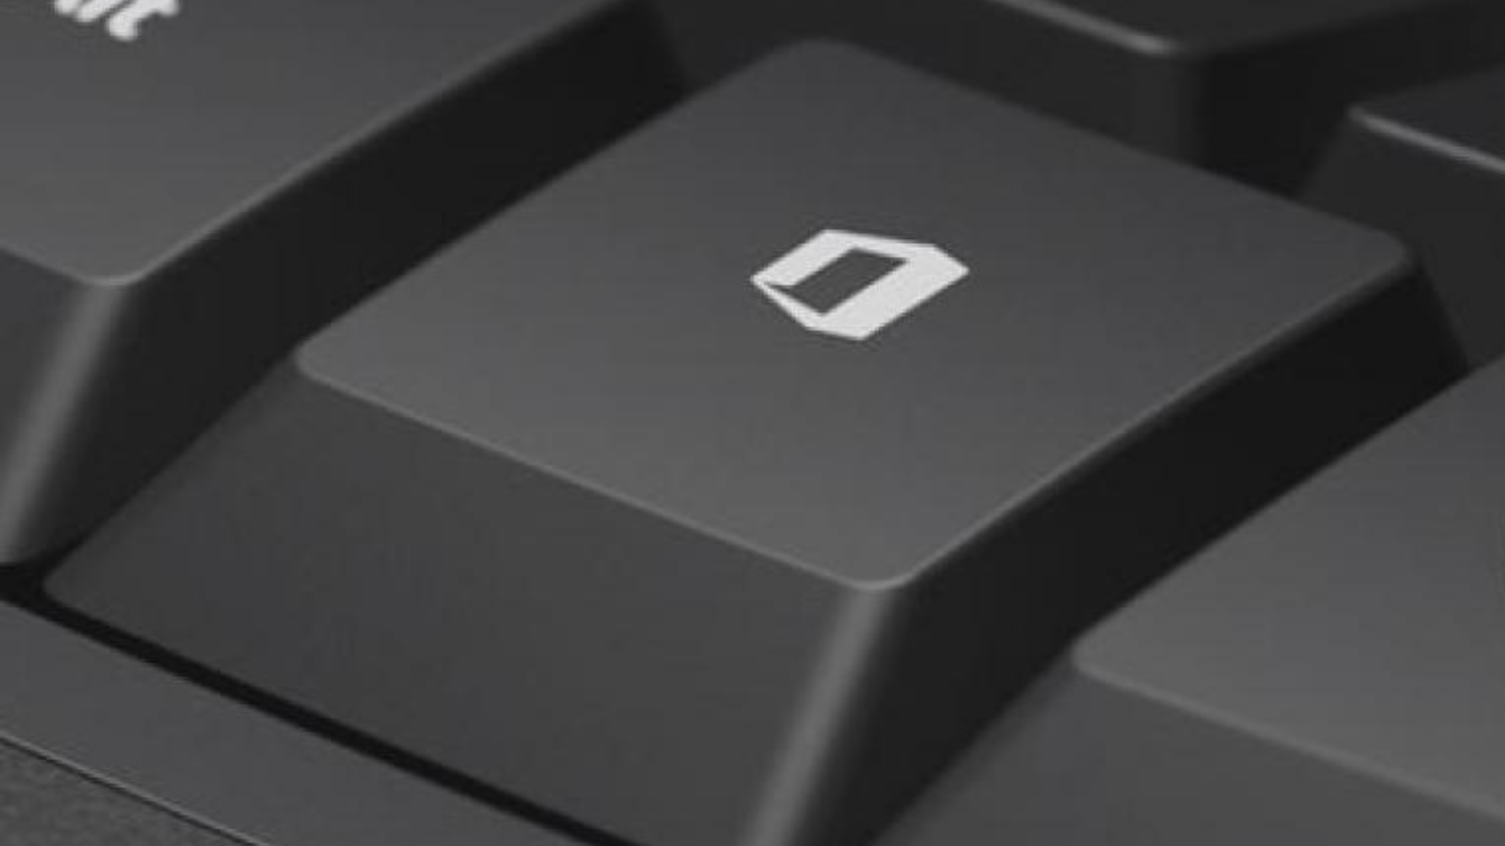 Microsoft Is Considering A Dedicated Office Key For Keyboards, Here's What It Should Do